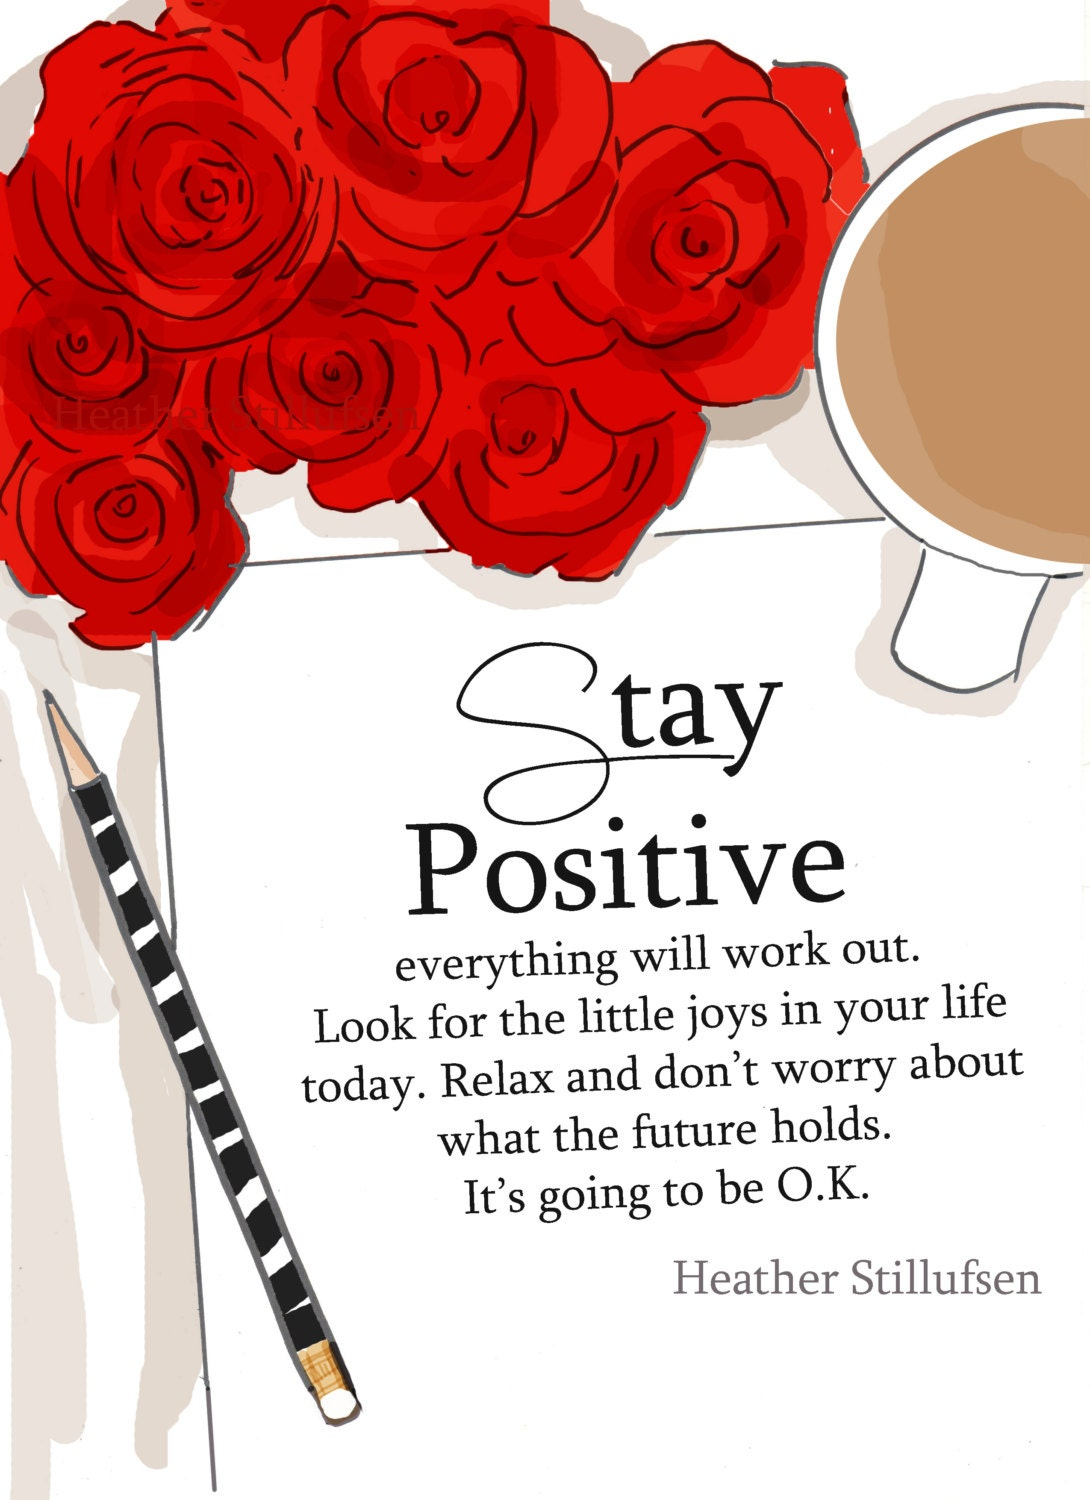 Stay Positive Art for Women Quotes for Women Art for | Etsy